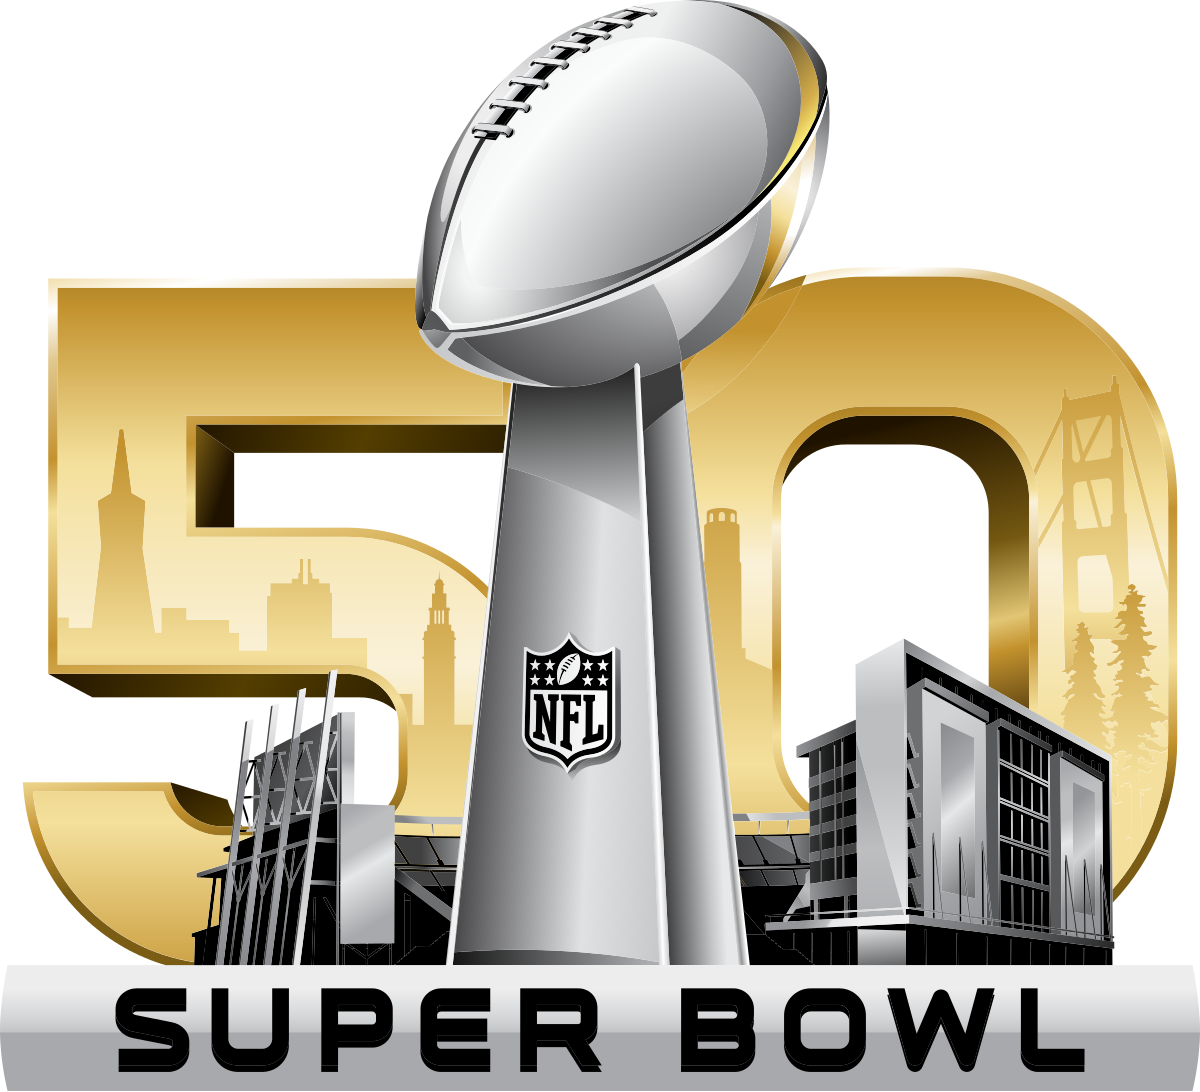 Super Bowl Clipart Group with 68+ items.